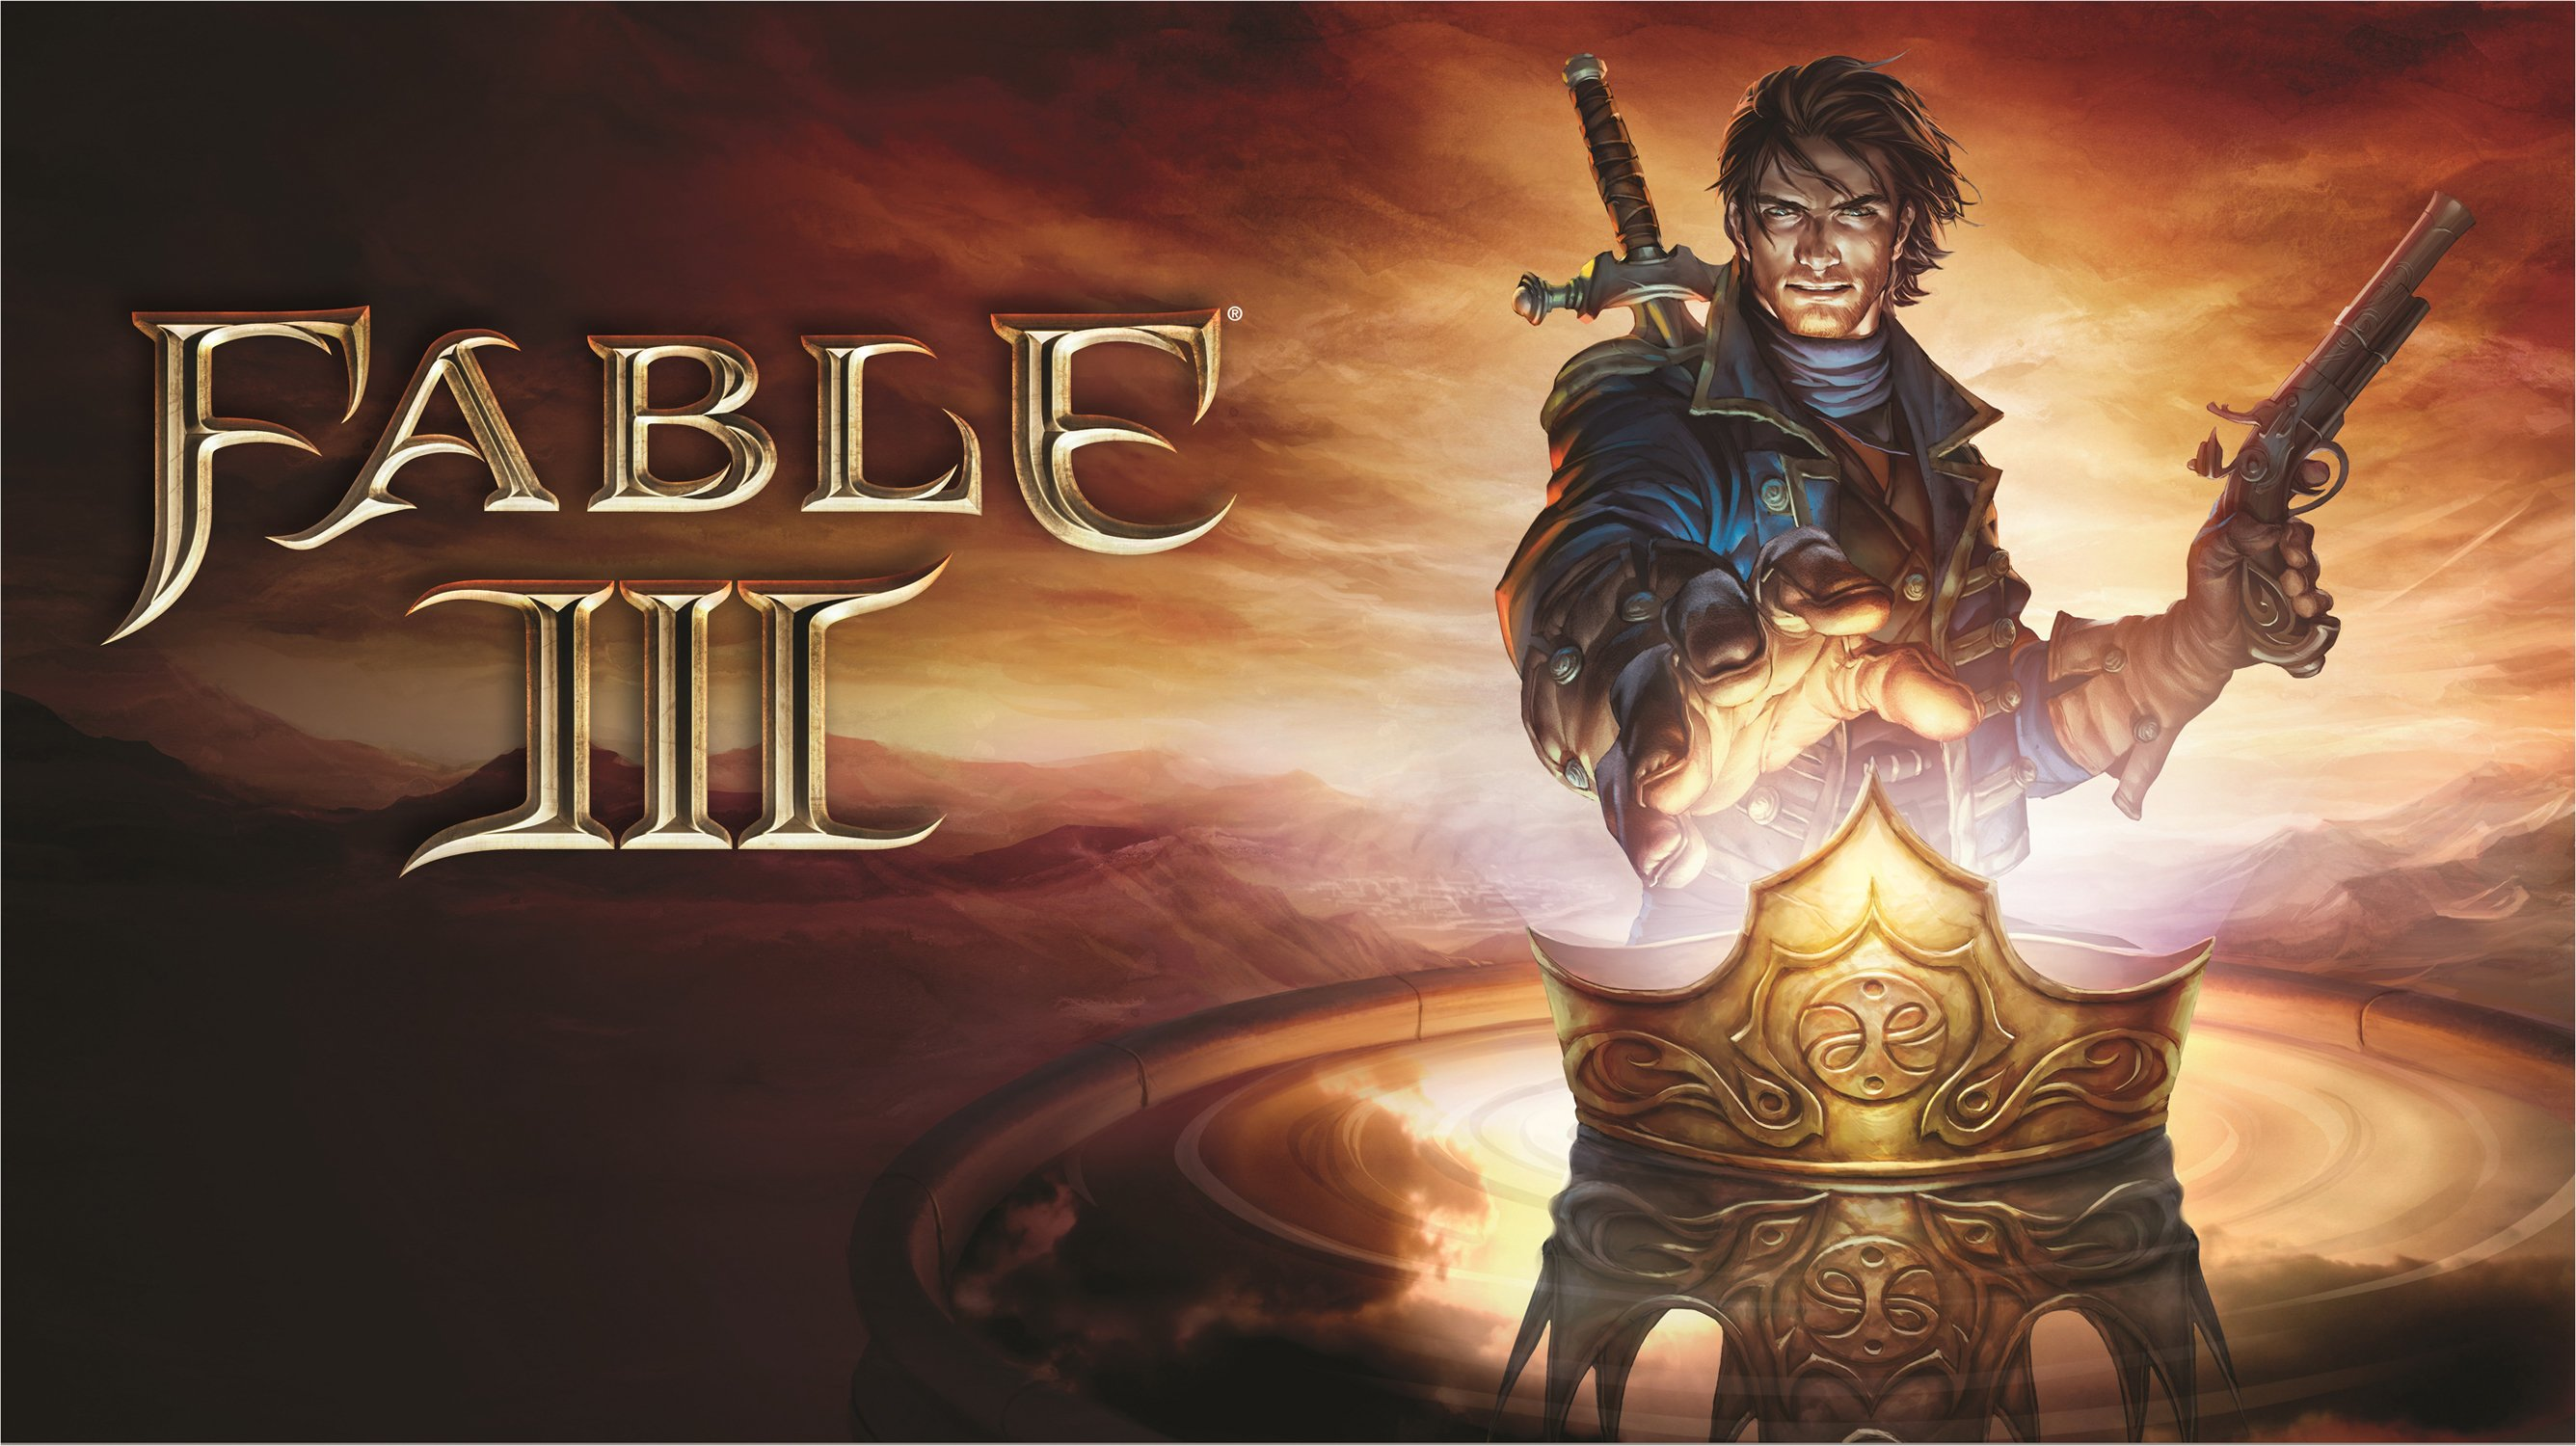 Канобу Квест: Fable. For every choice. A consequence - Изображение 11